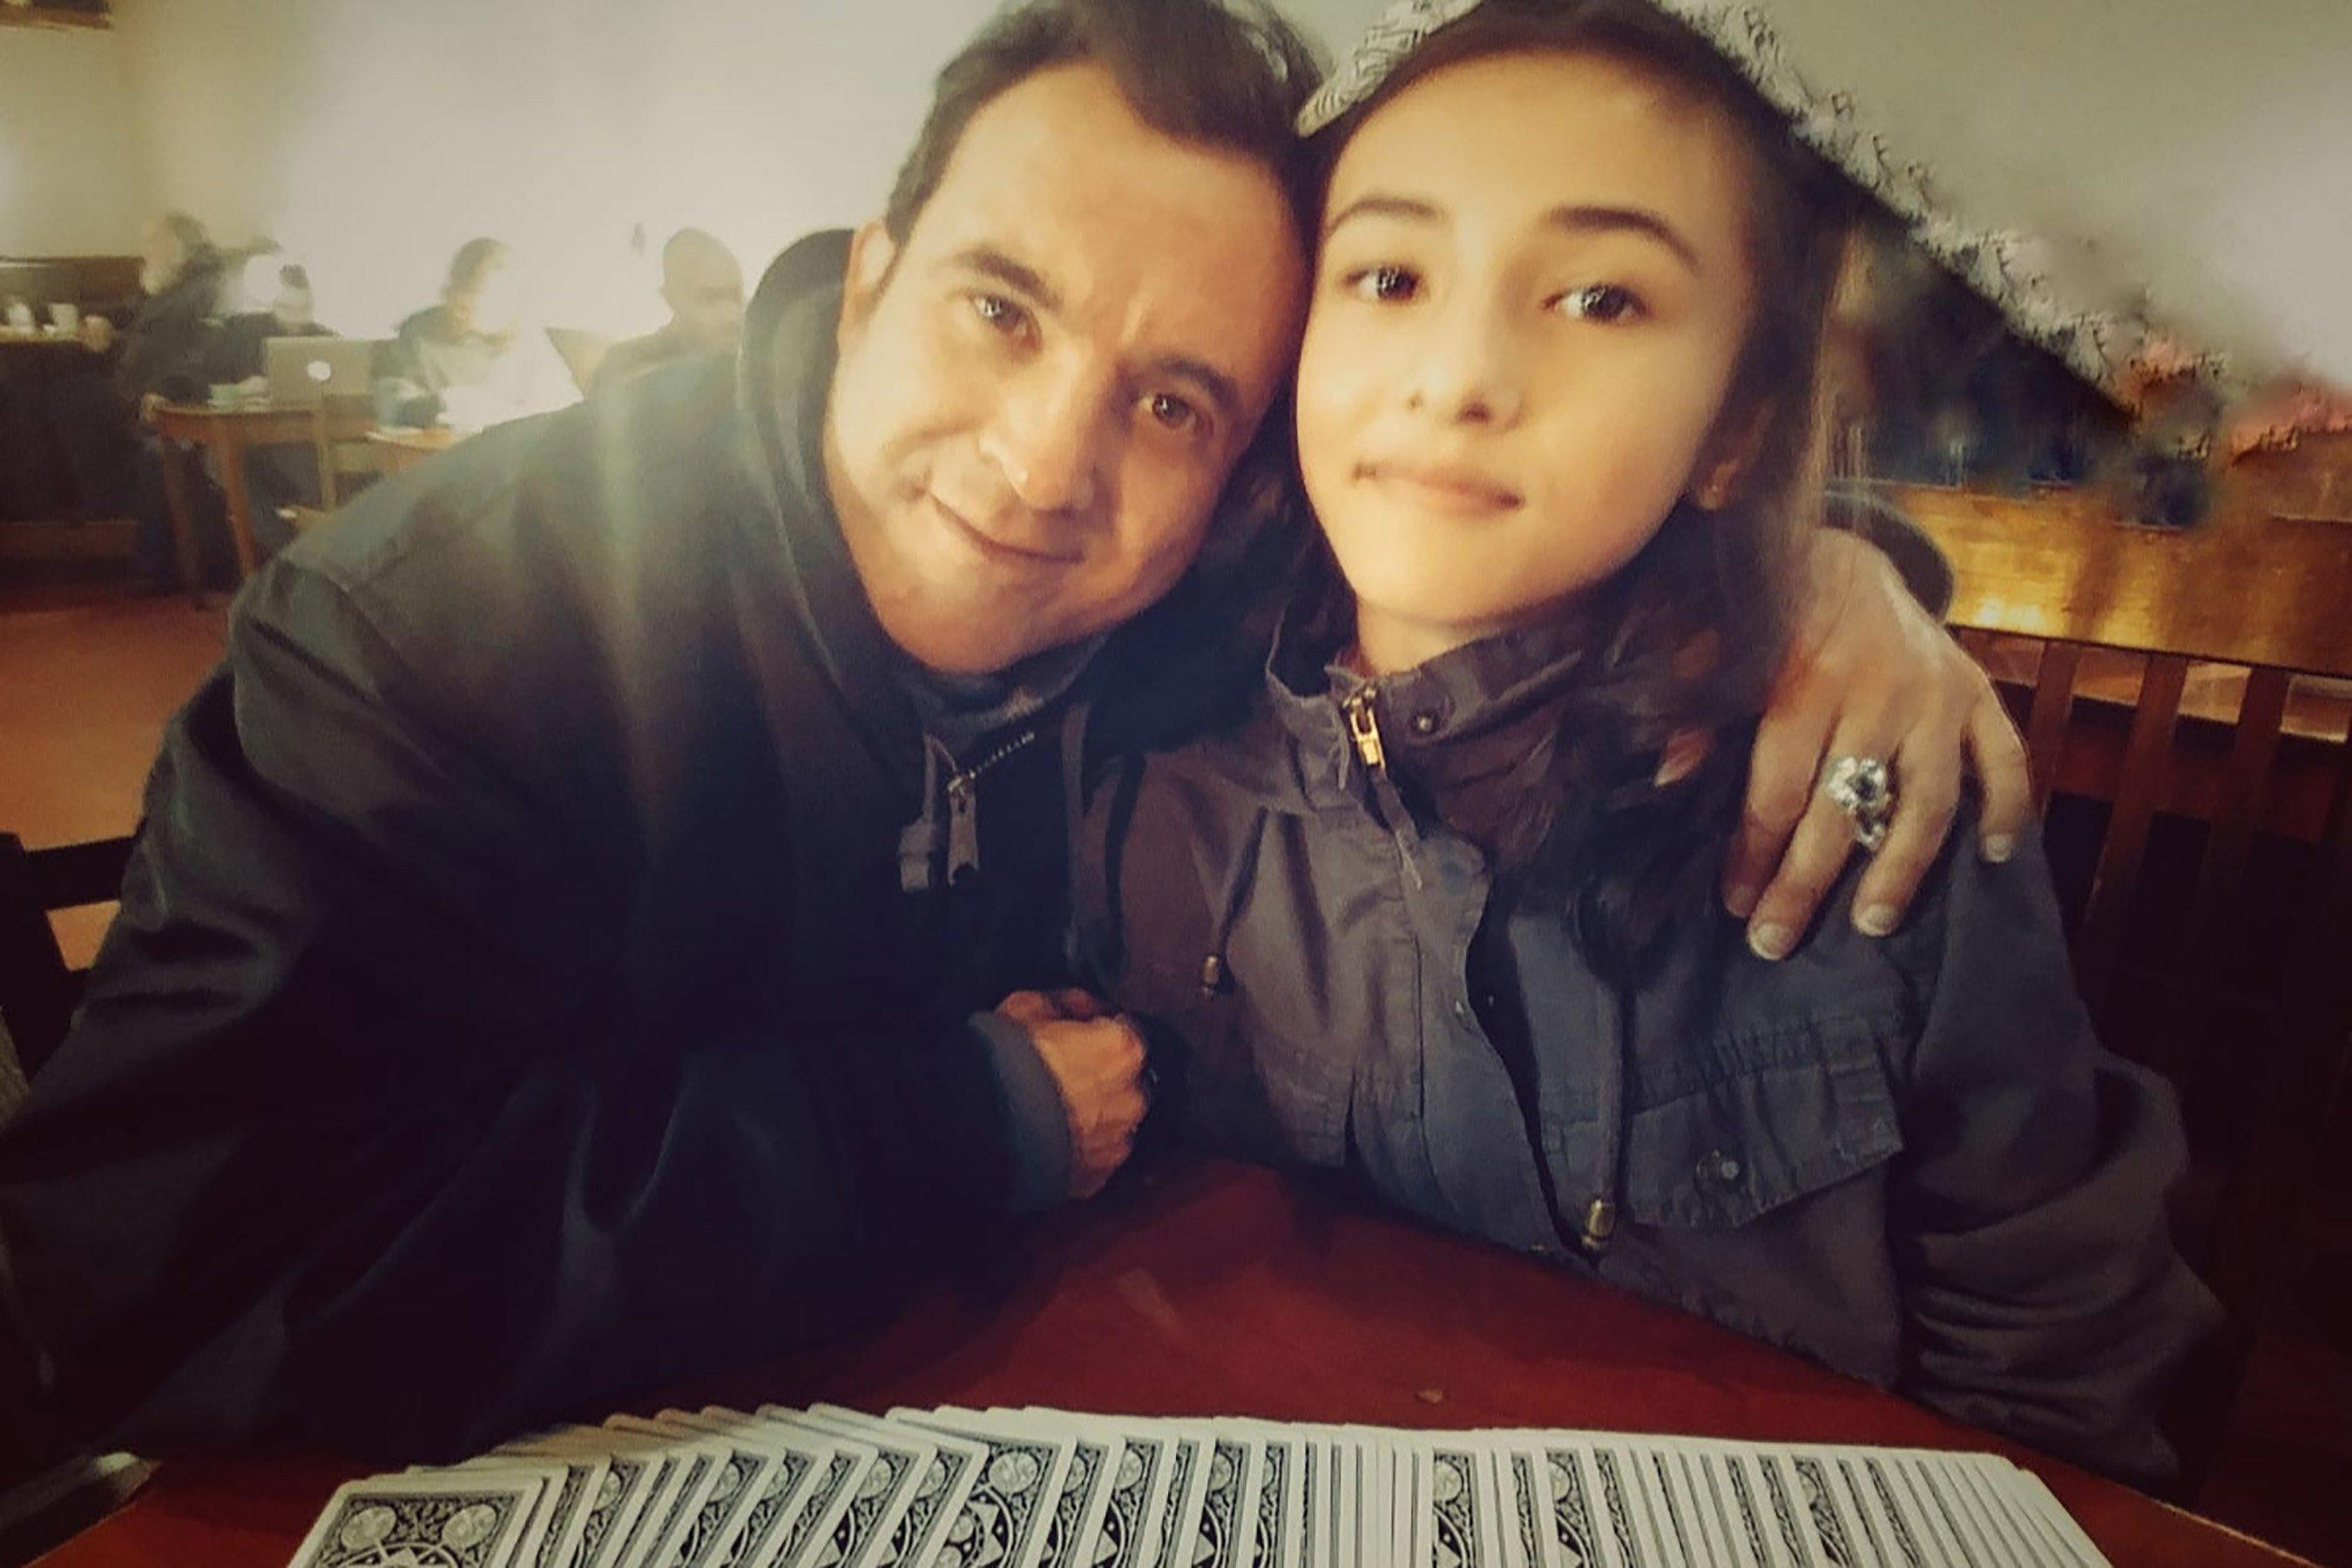 Family of Once Upon a Time Actor Gabe Khouth Raising Money